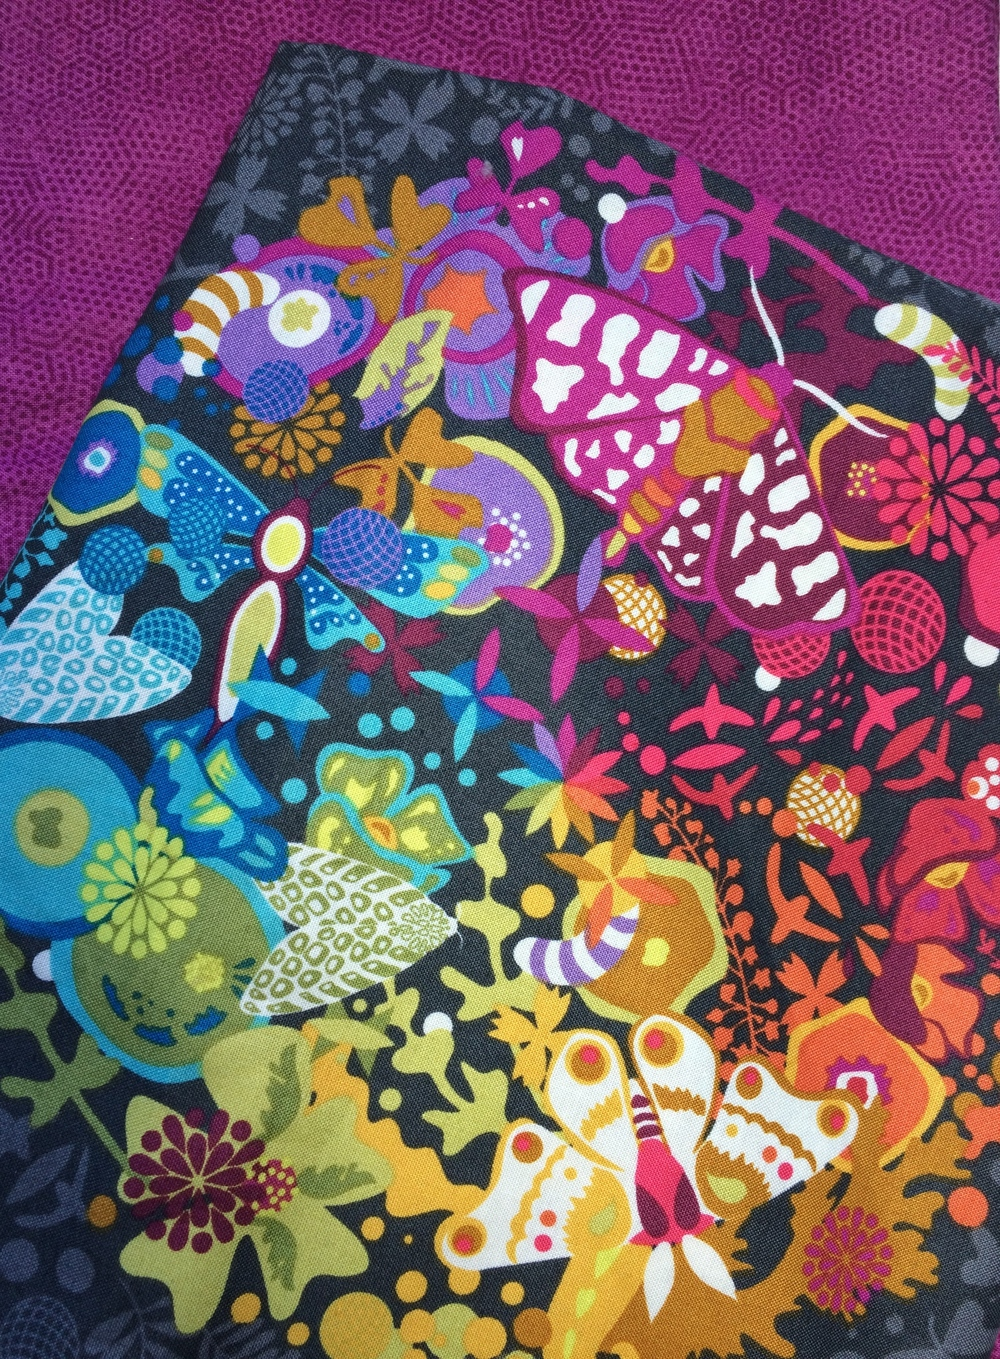 This beautiful and colorful Alison Glass fabric looks fabulous with so many different fabrics.